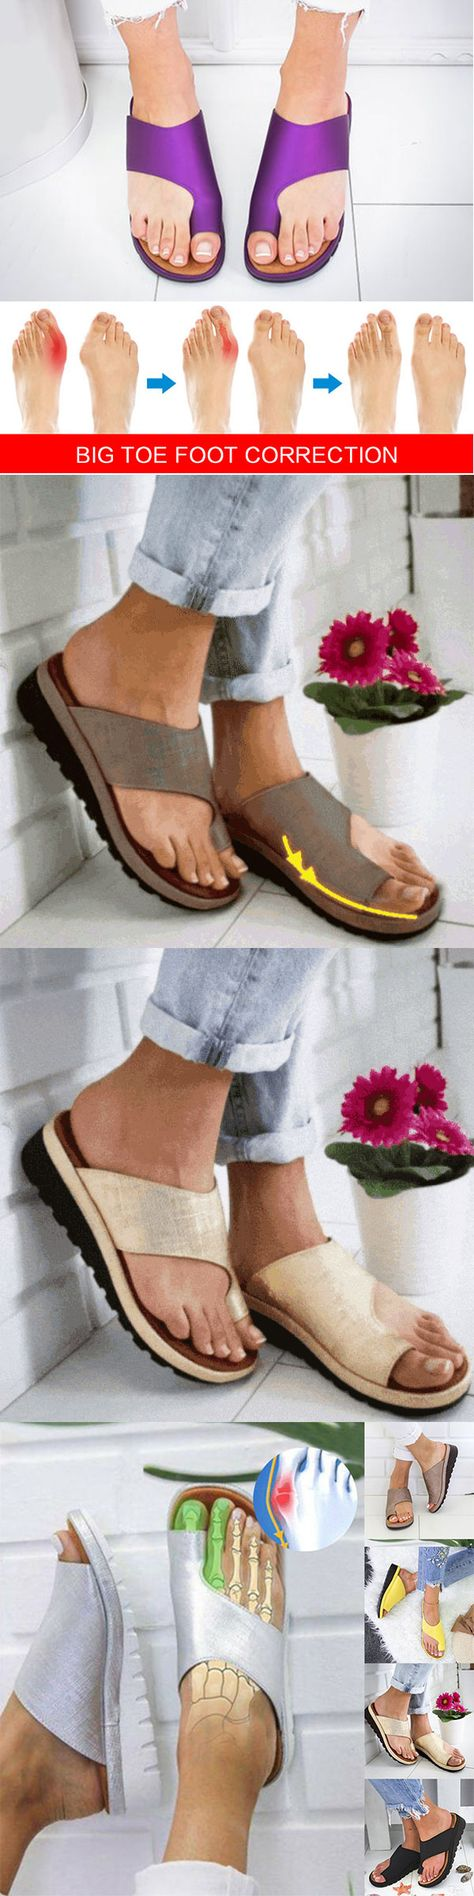 Still worry about toe foot correction?A Perfect shoes solve all your problem~Only $26.99 & Free shipping,Muti-color  for choice,Pick your own shoes now~